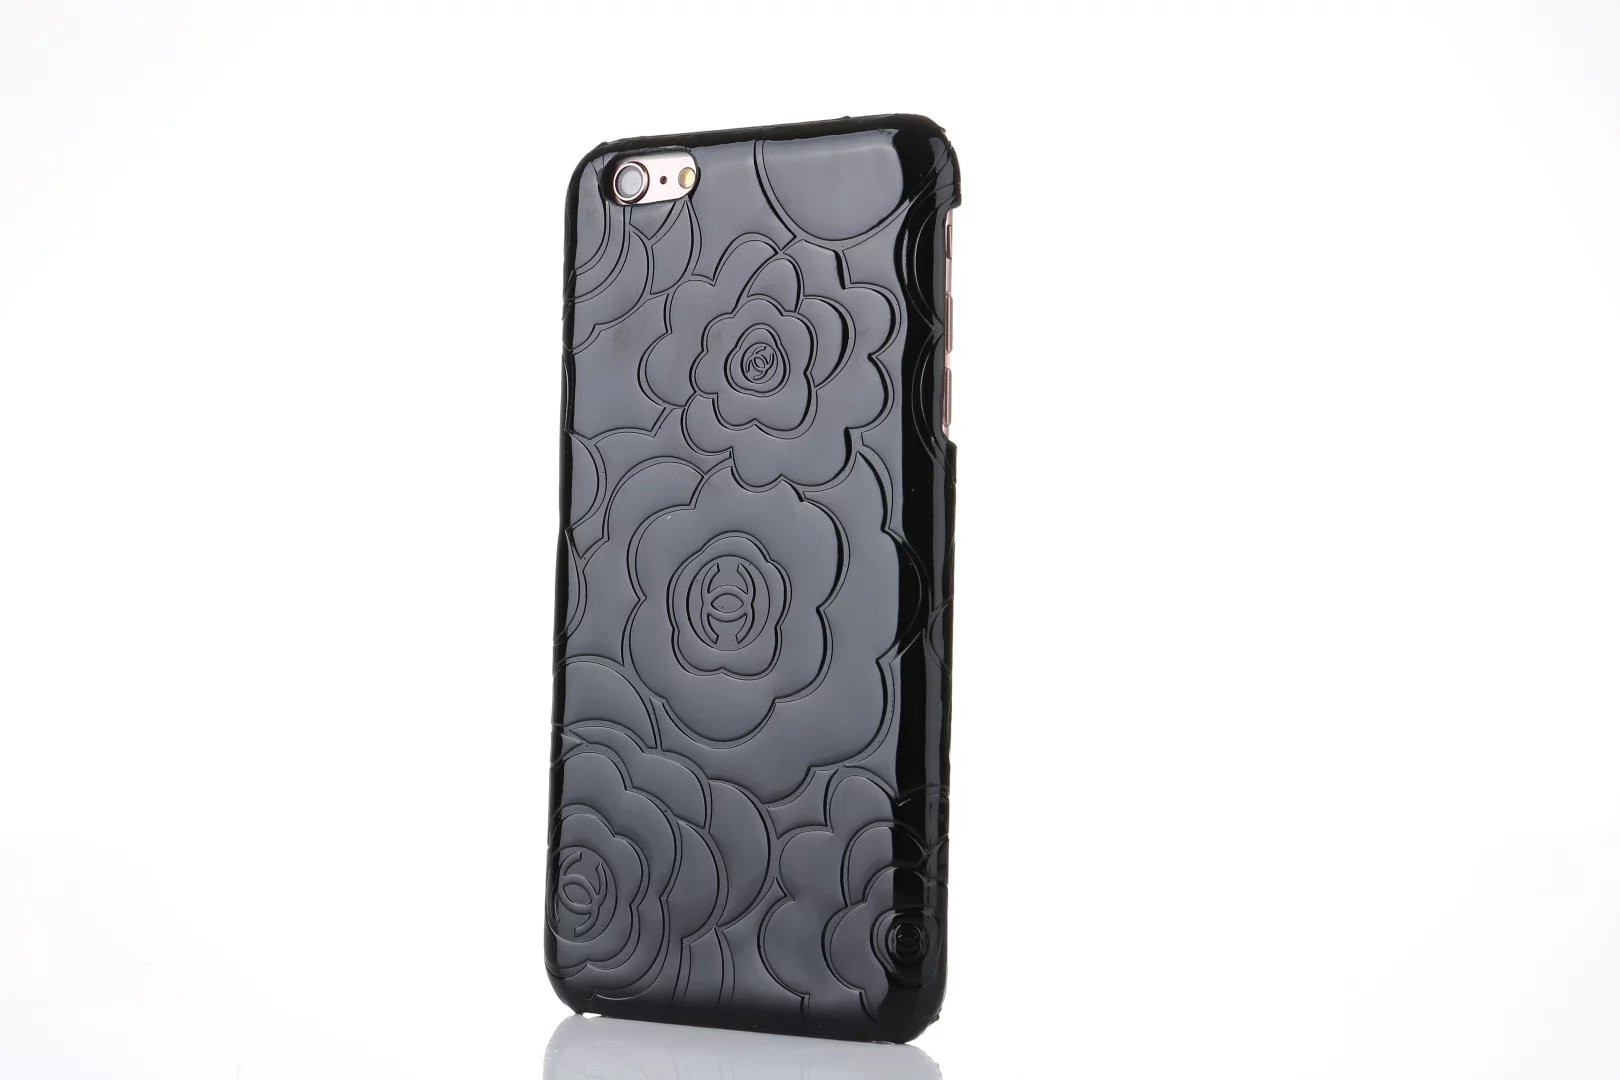 designer phone cases for iphone 6 phone cases for iphone 6 fashion iphone6 case iphone 6 6 iphone 6 news online phone case store upcoming iphone news iphones covers and cases iphone 6 case maker